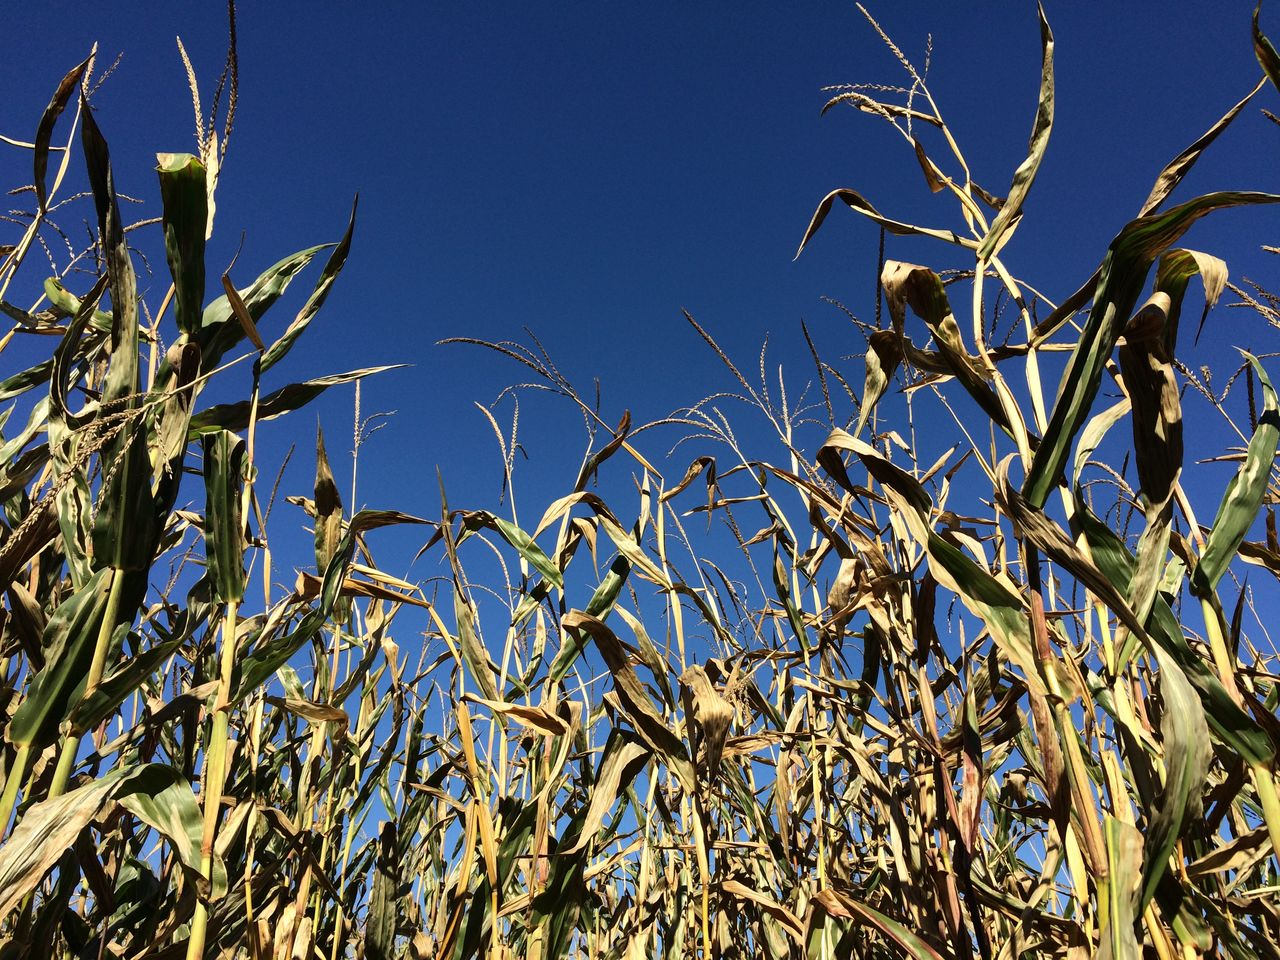 LOW ANGLE VIEW OF CROPS GROWING AGAINST BLUE SKY